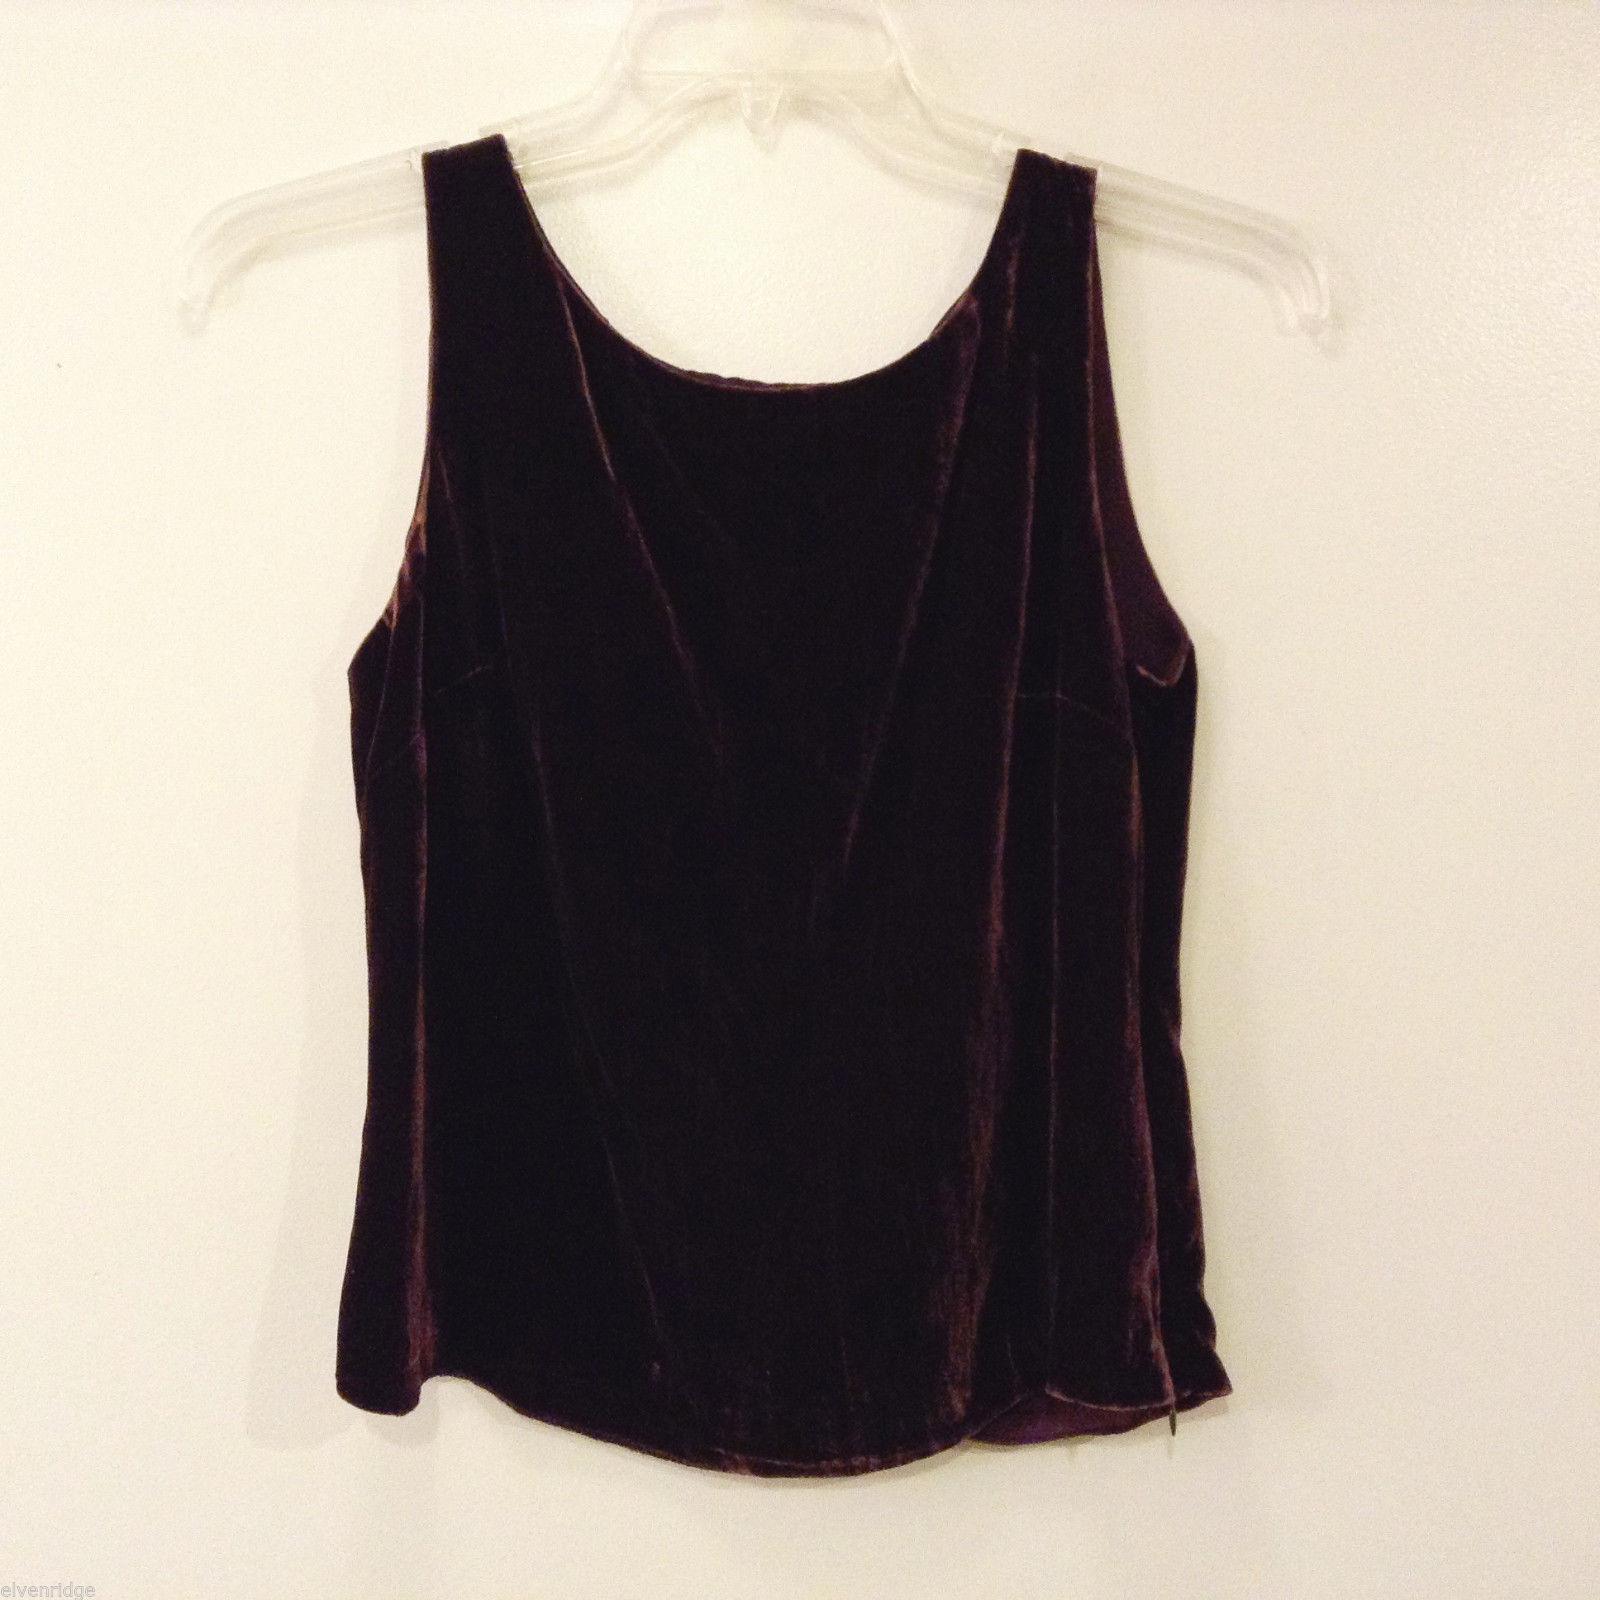 Josephine Chaus Women's Size 6 Velvet Shell Tank Top Dark Brown-Maroon Crew Neck